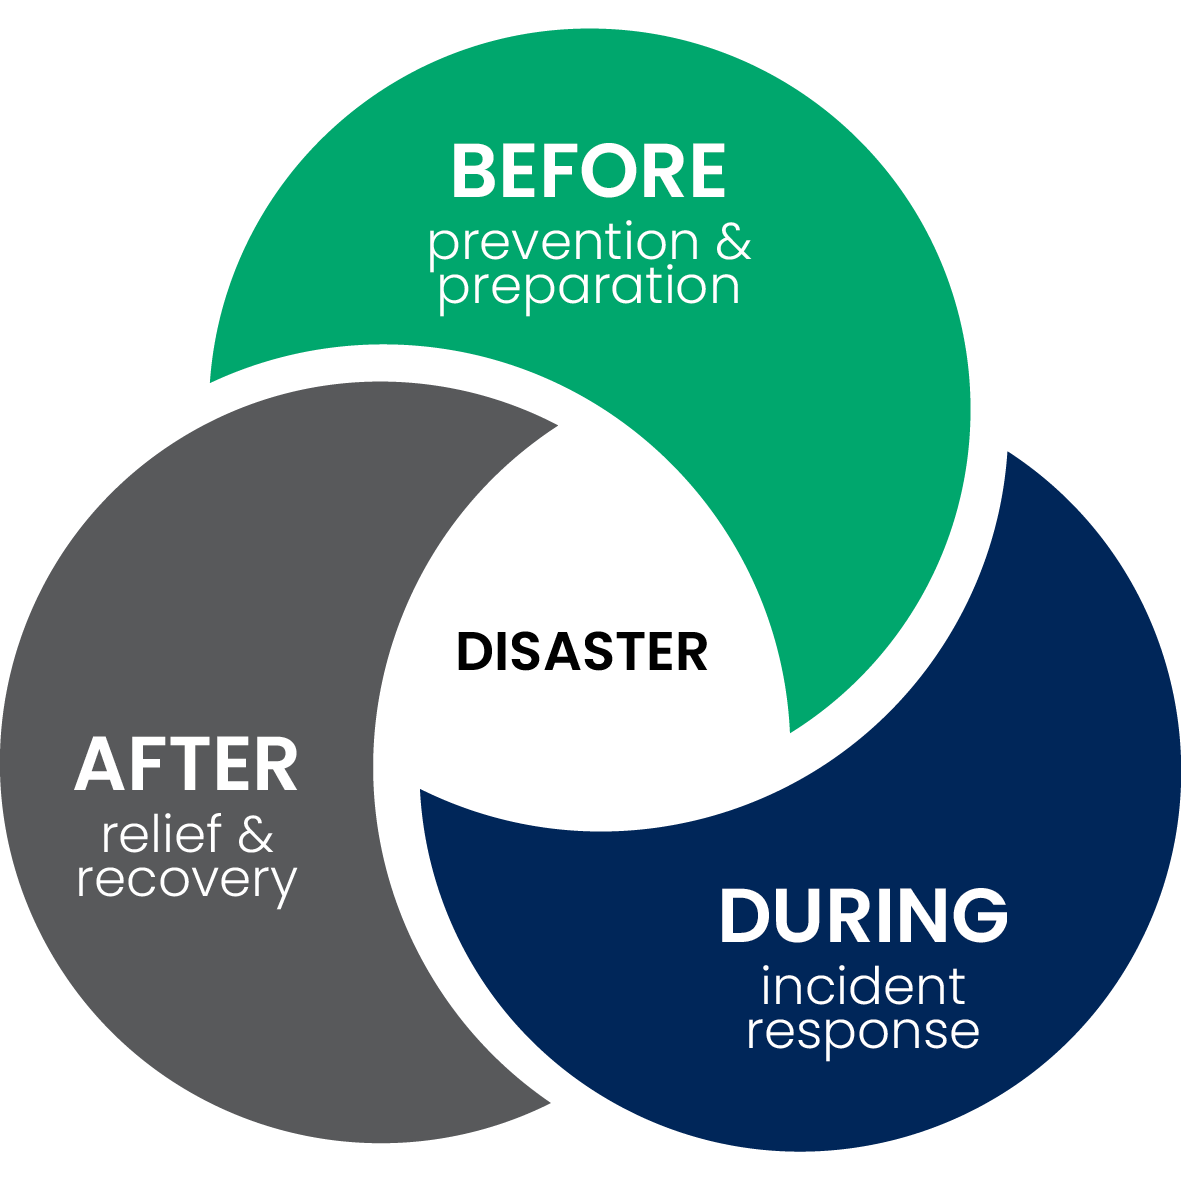 before, during and after disasters we work with communities and businesses